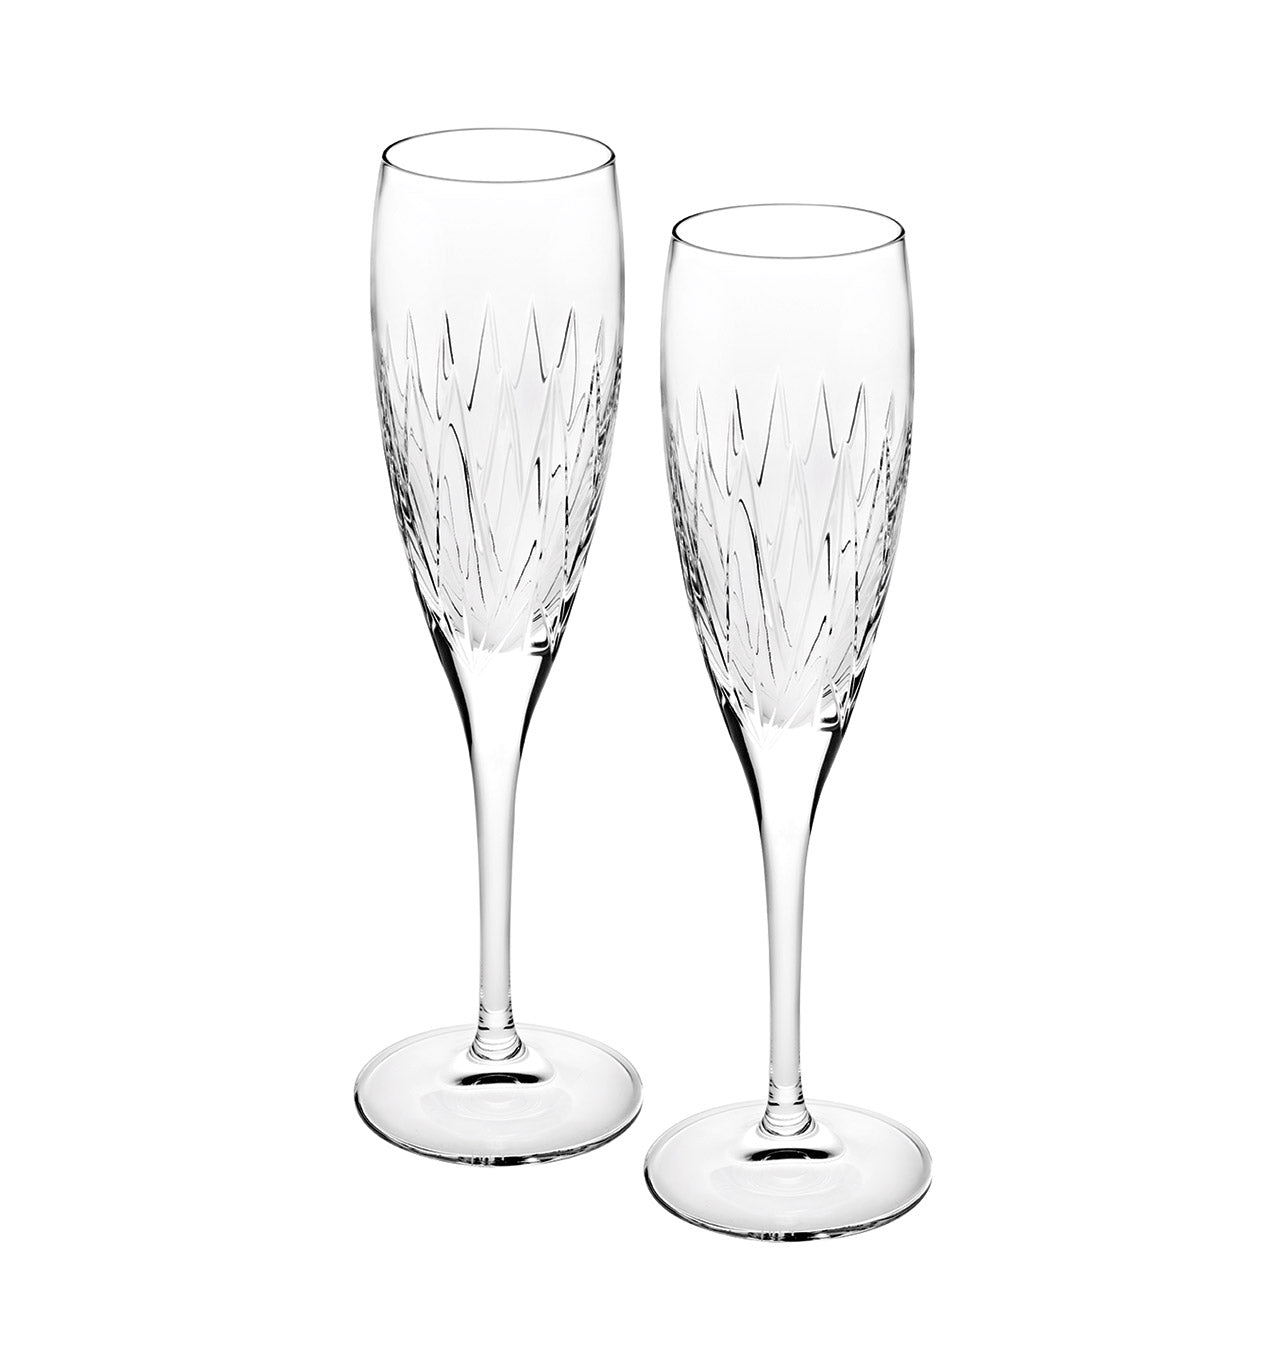 Set with 2 Flutes - Astro - Glassware - Vista Alegre